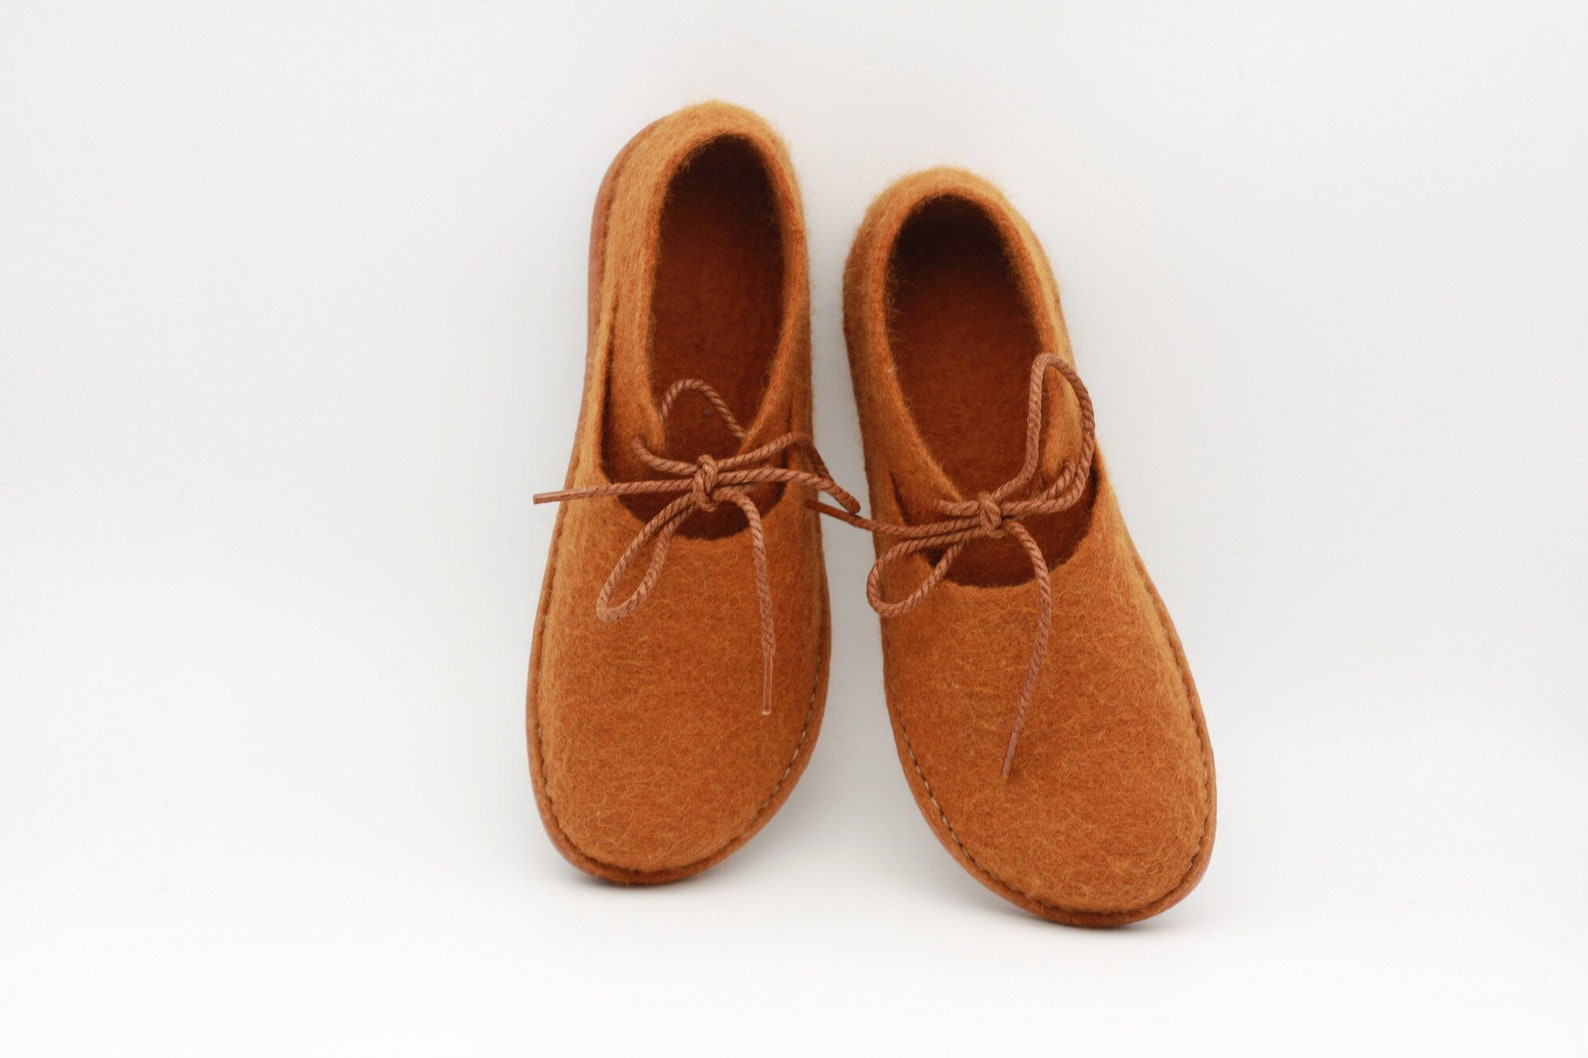 lucielalune / spring ballet shoes/eu38 us7.5 uk5 / caramel color/ women/ handmade felted wool/